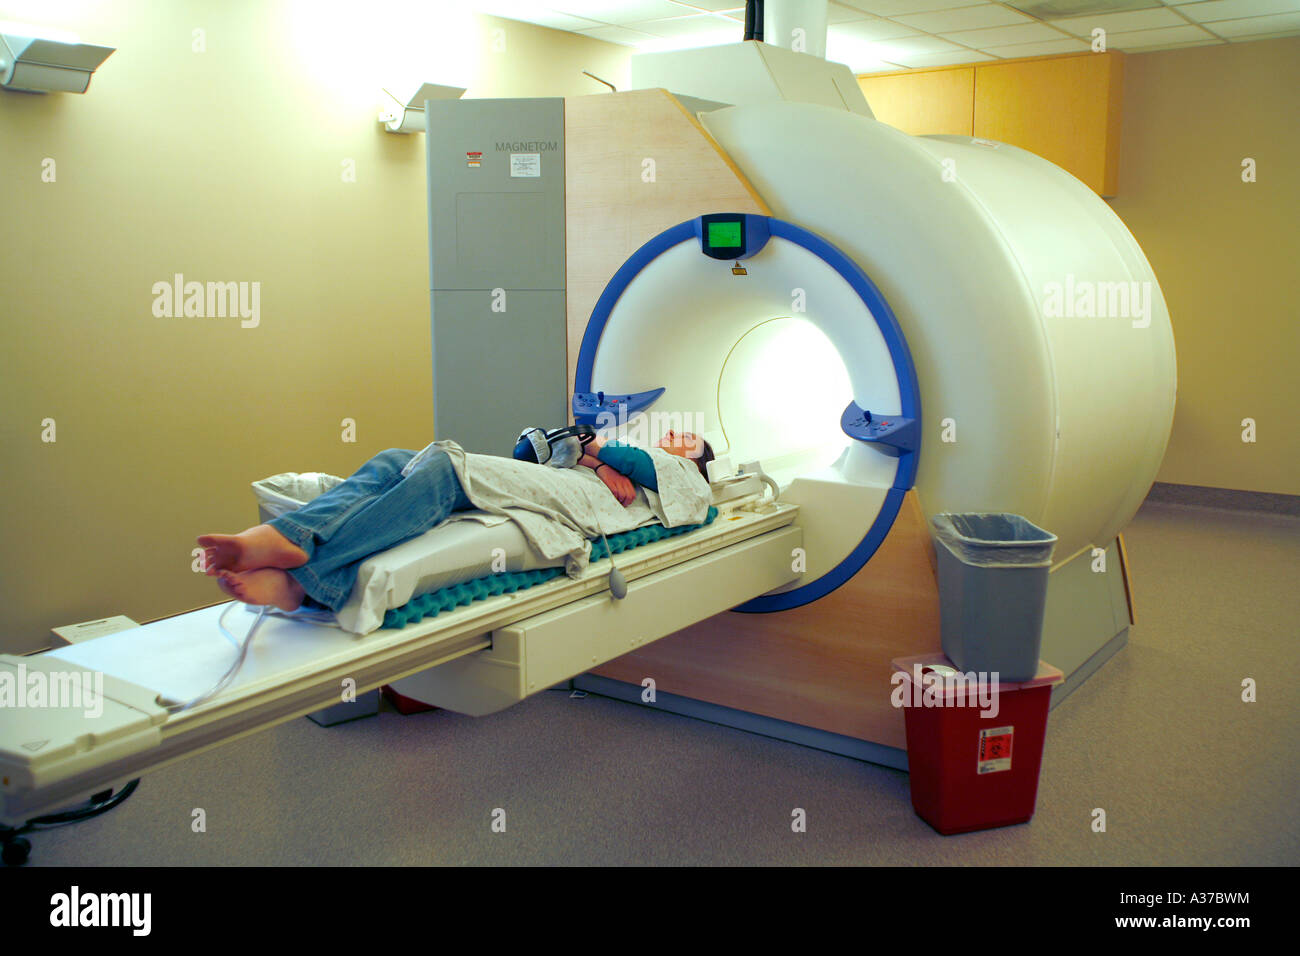 An MRI (Magnetic resonance imaging) machine is being used to test a teenage female for the reason she has head aches. - Stock Image